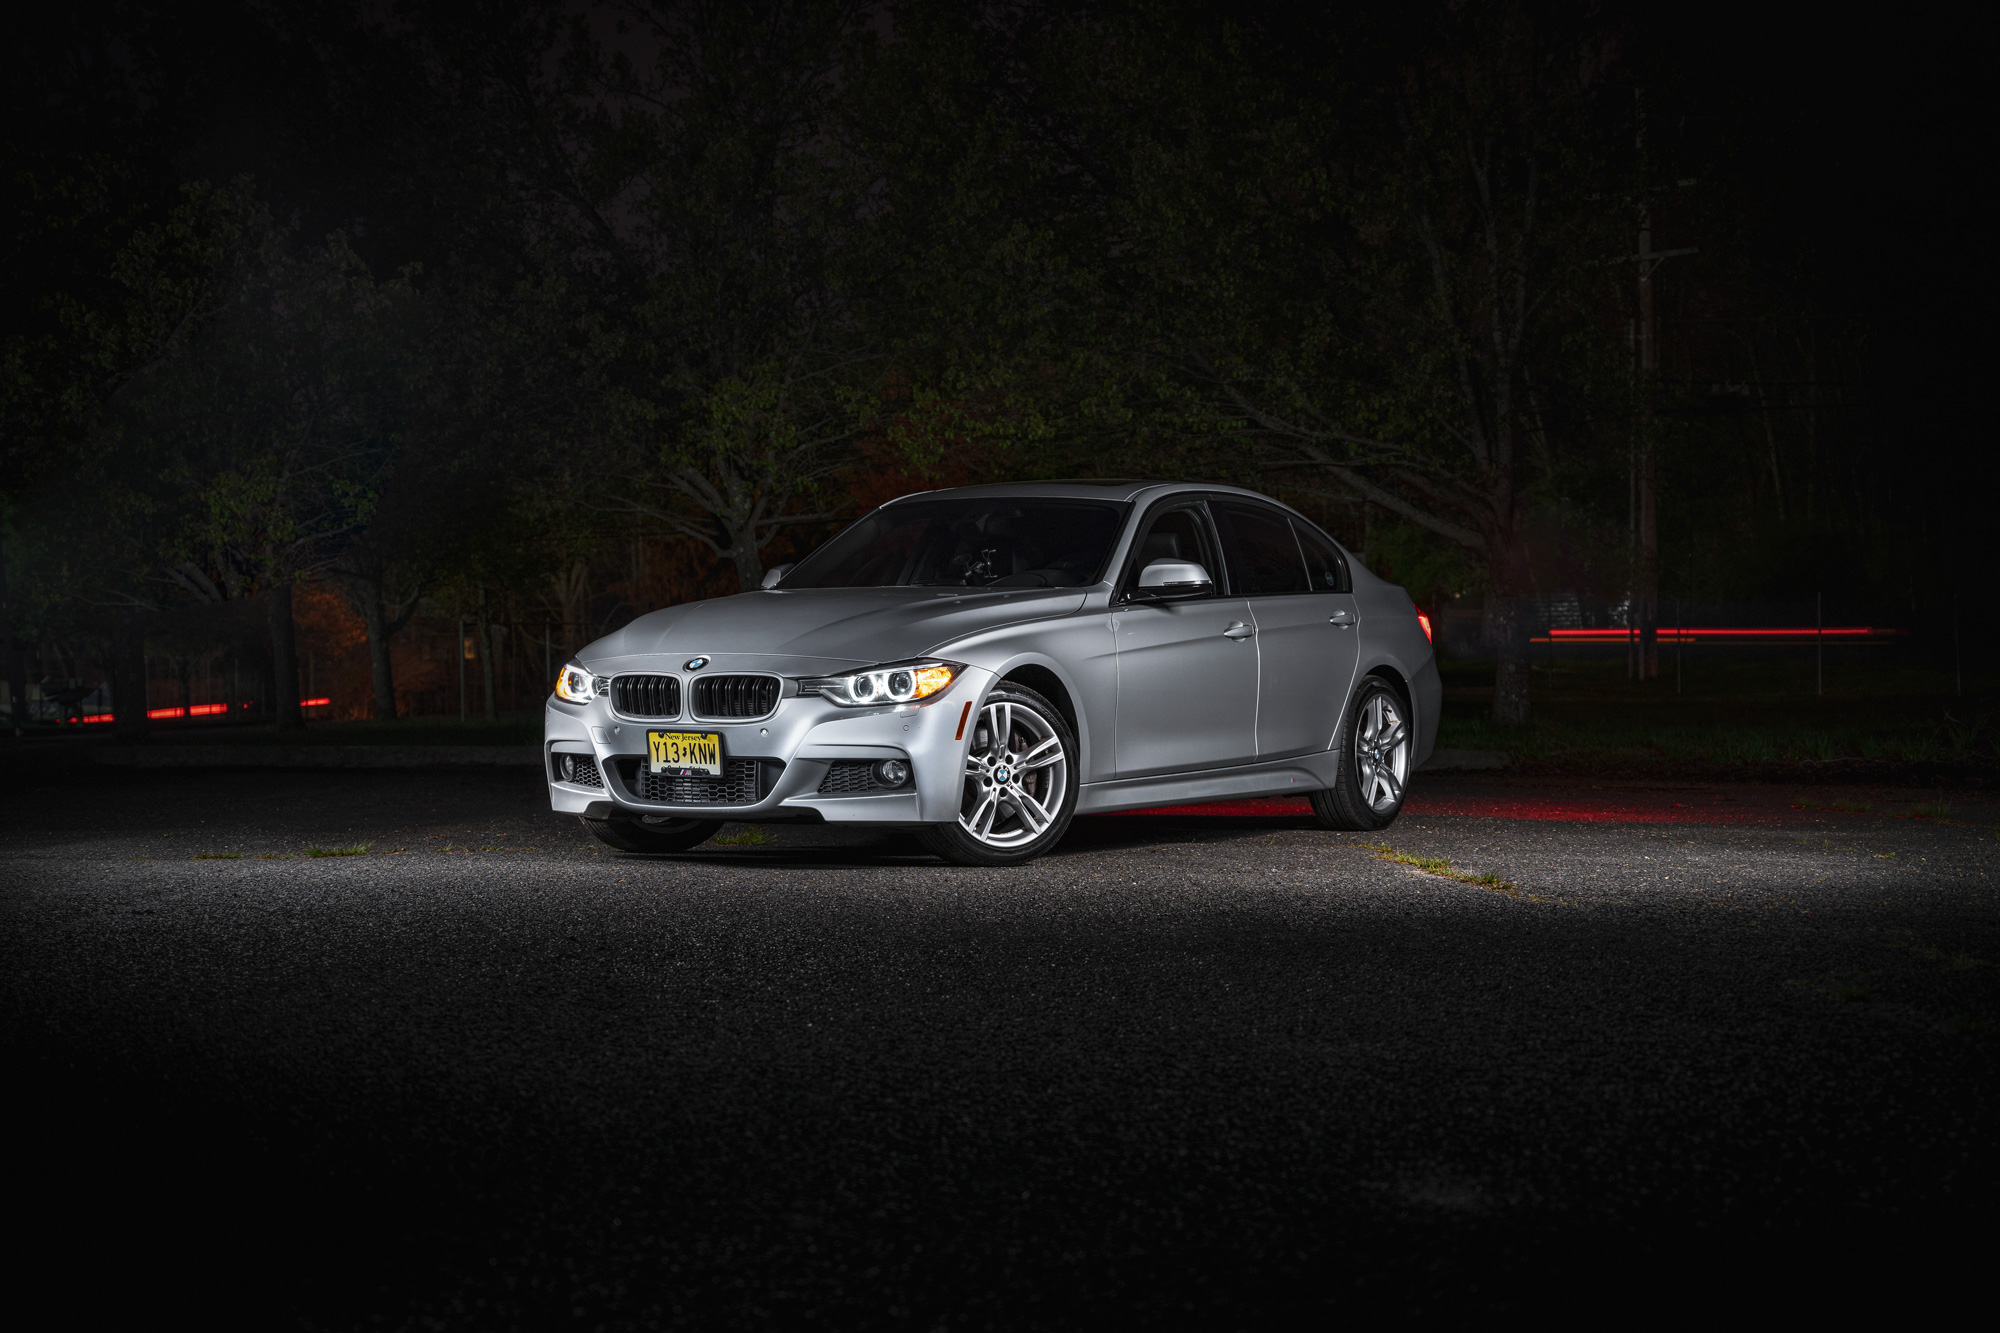 BMW 335i light painting